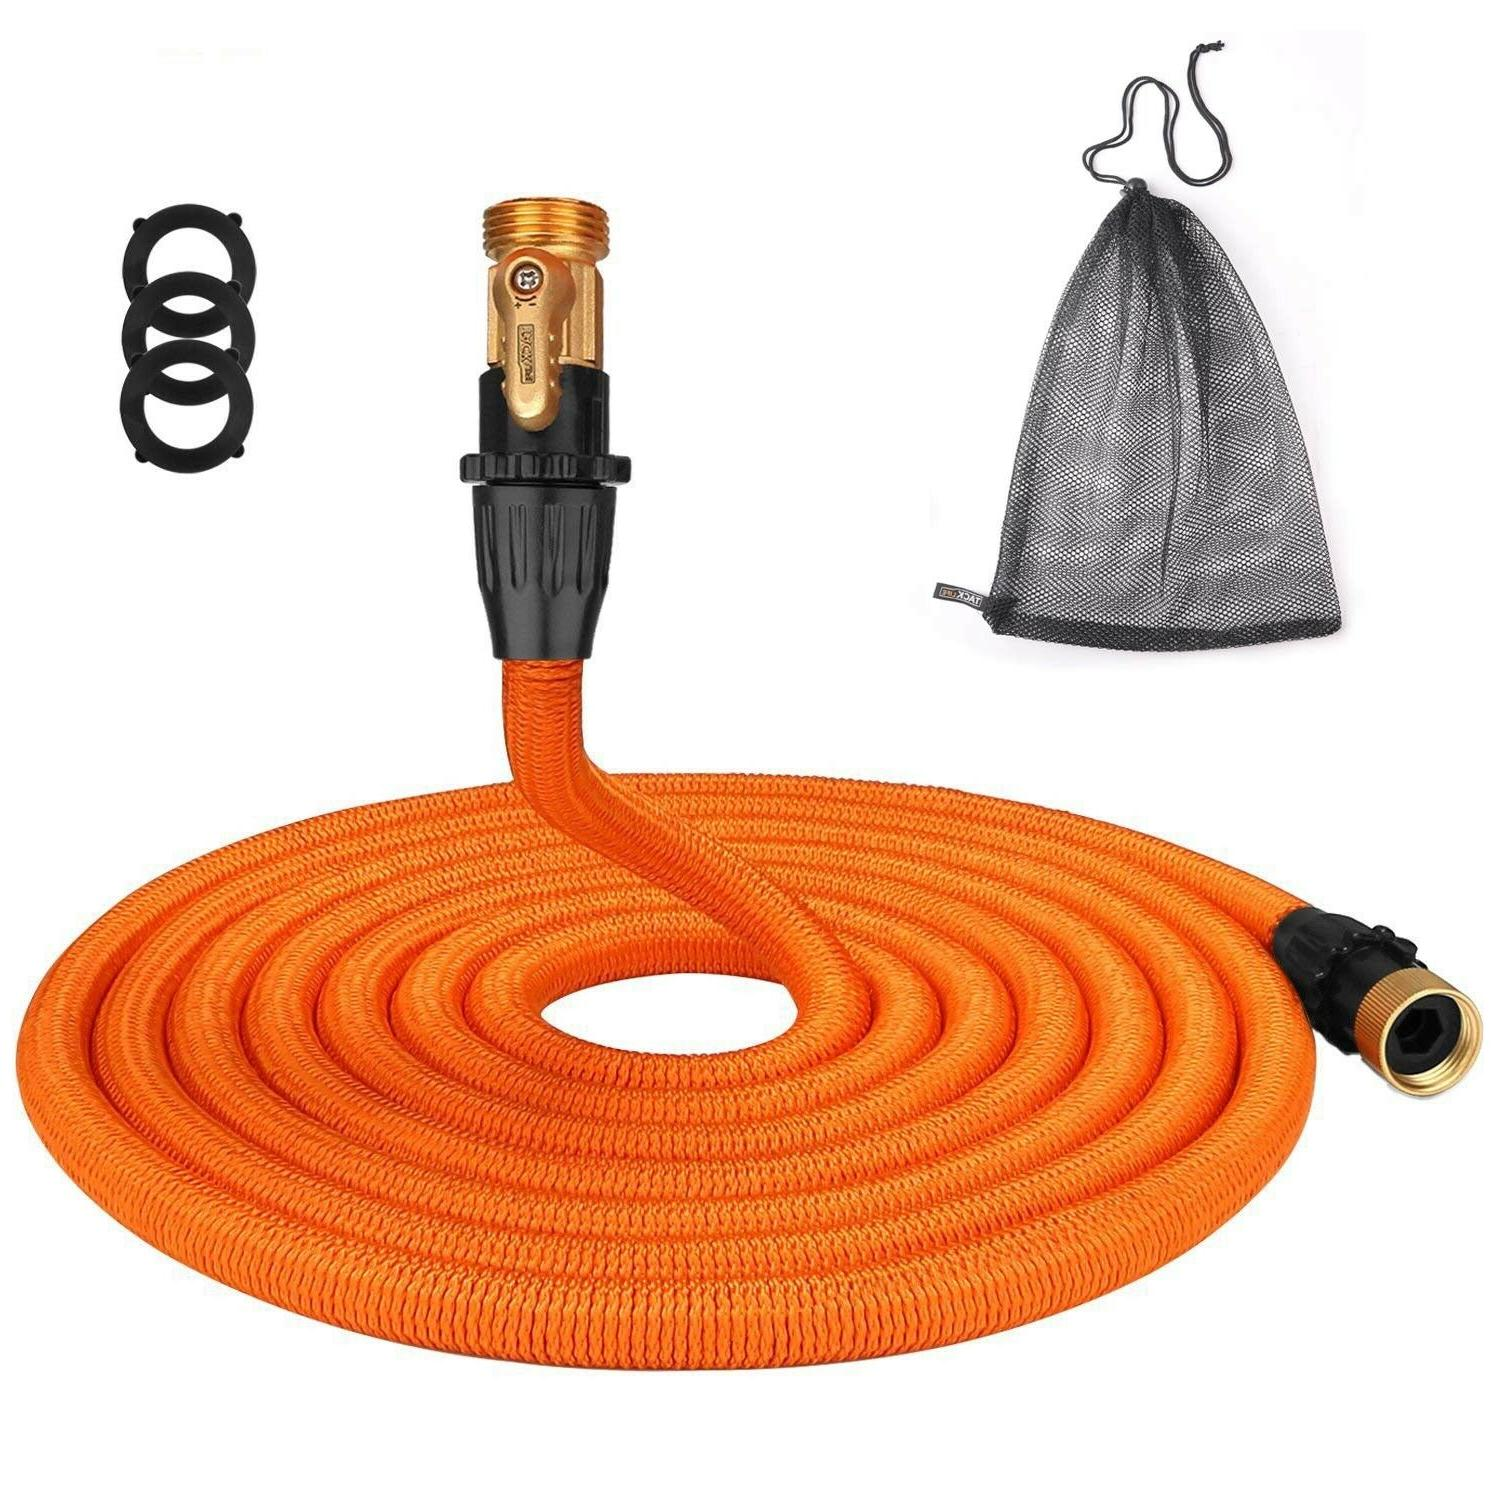 50ft expandable garden hose with double latex